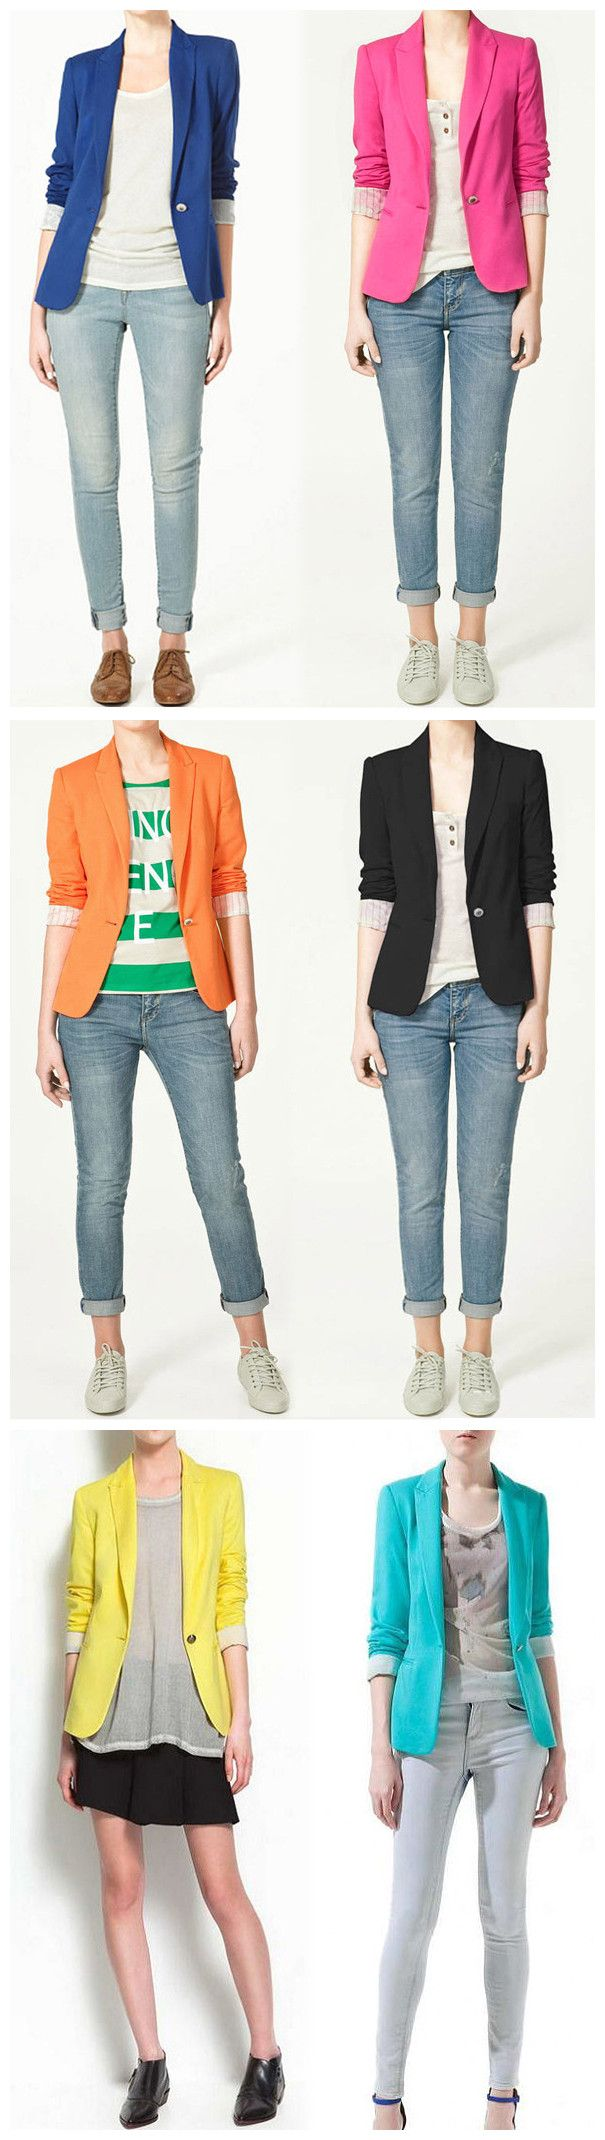 79 best Work Outfit Ideas! images on Pinterest | Work outfits ...